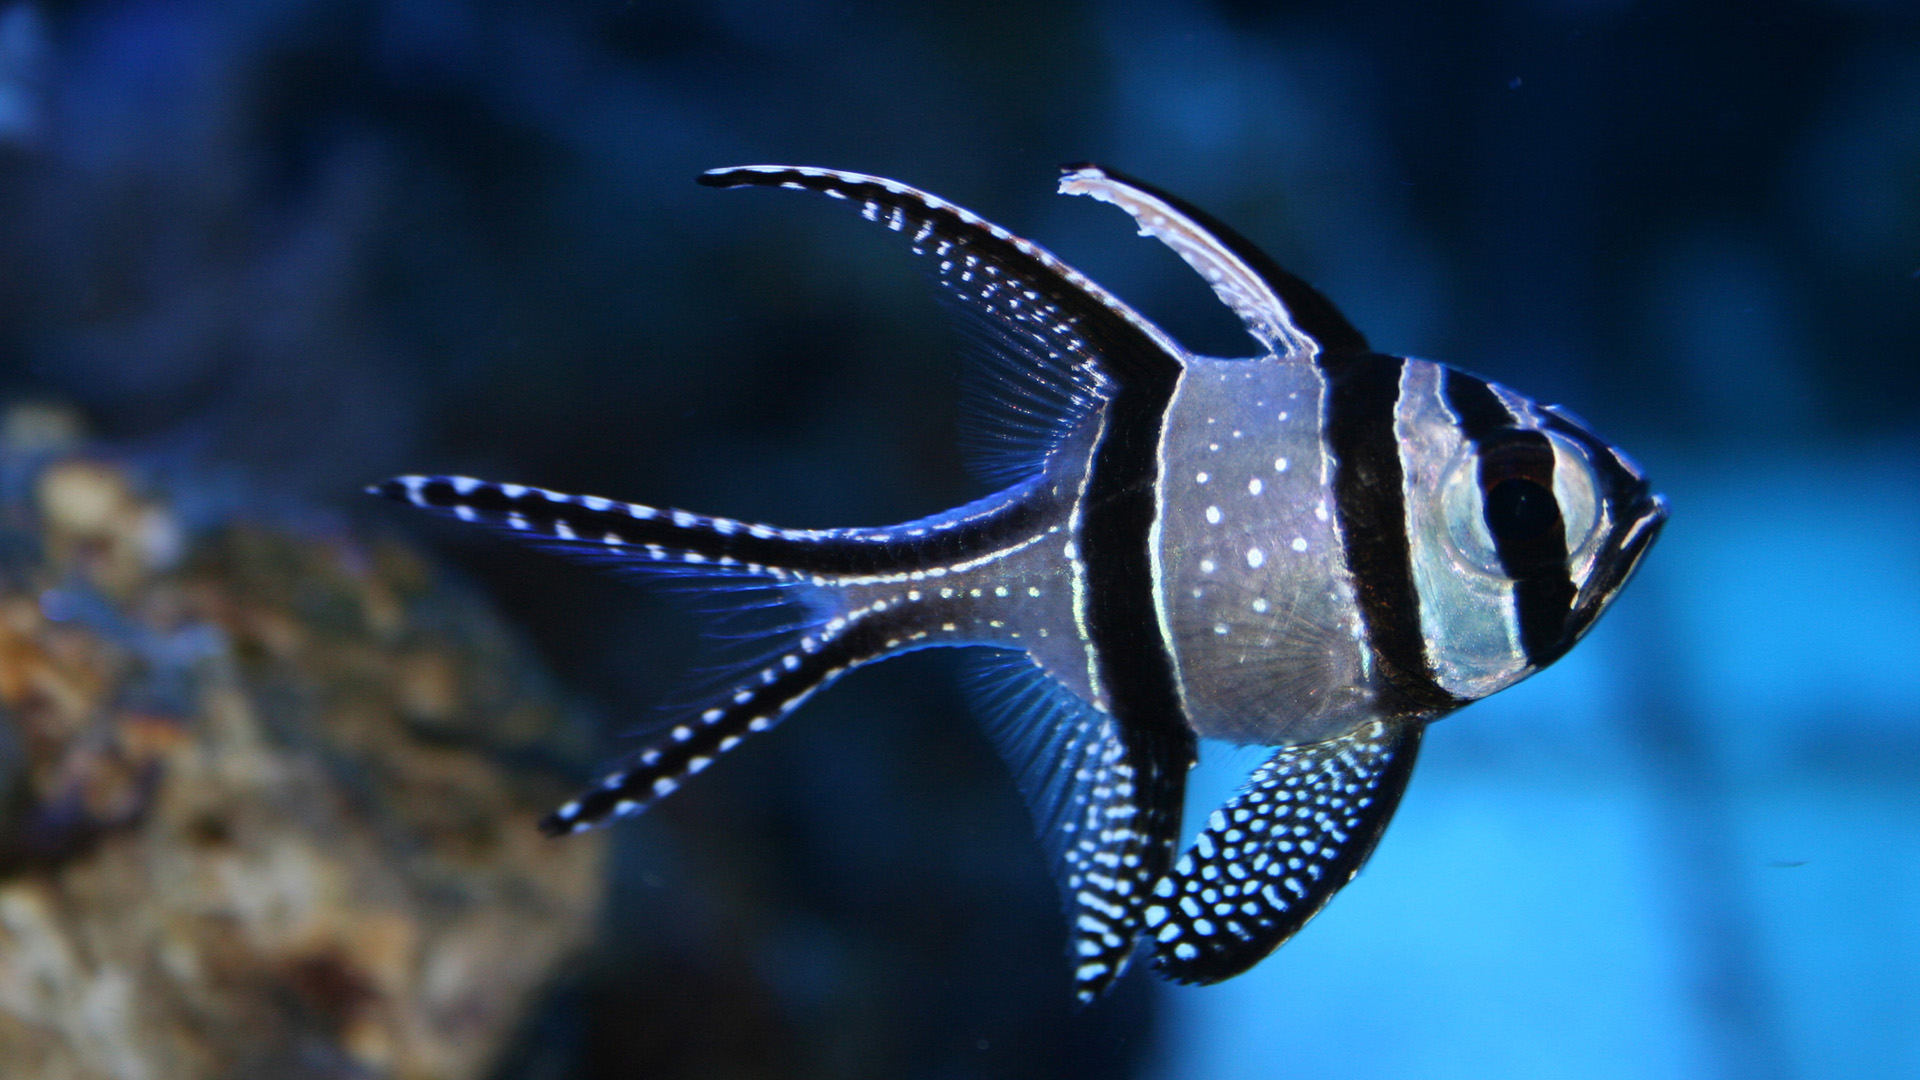 Beautiful Fish Photos Images And HD Wallpapers